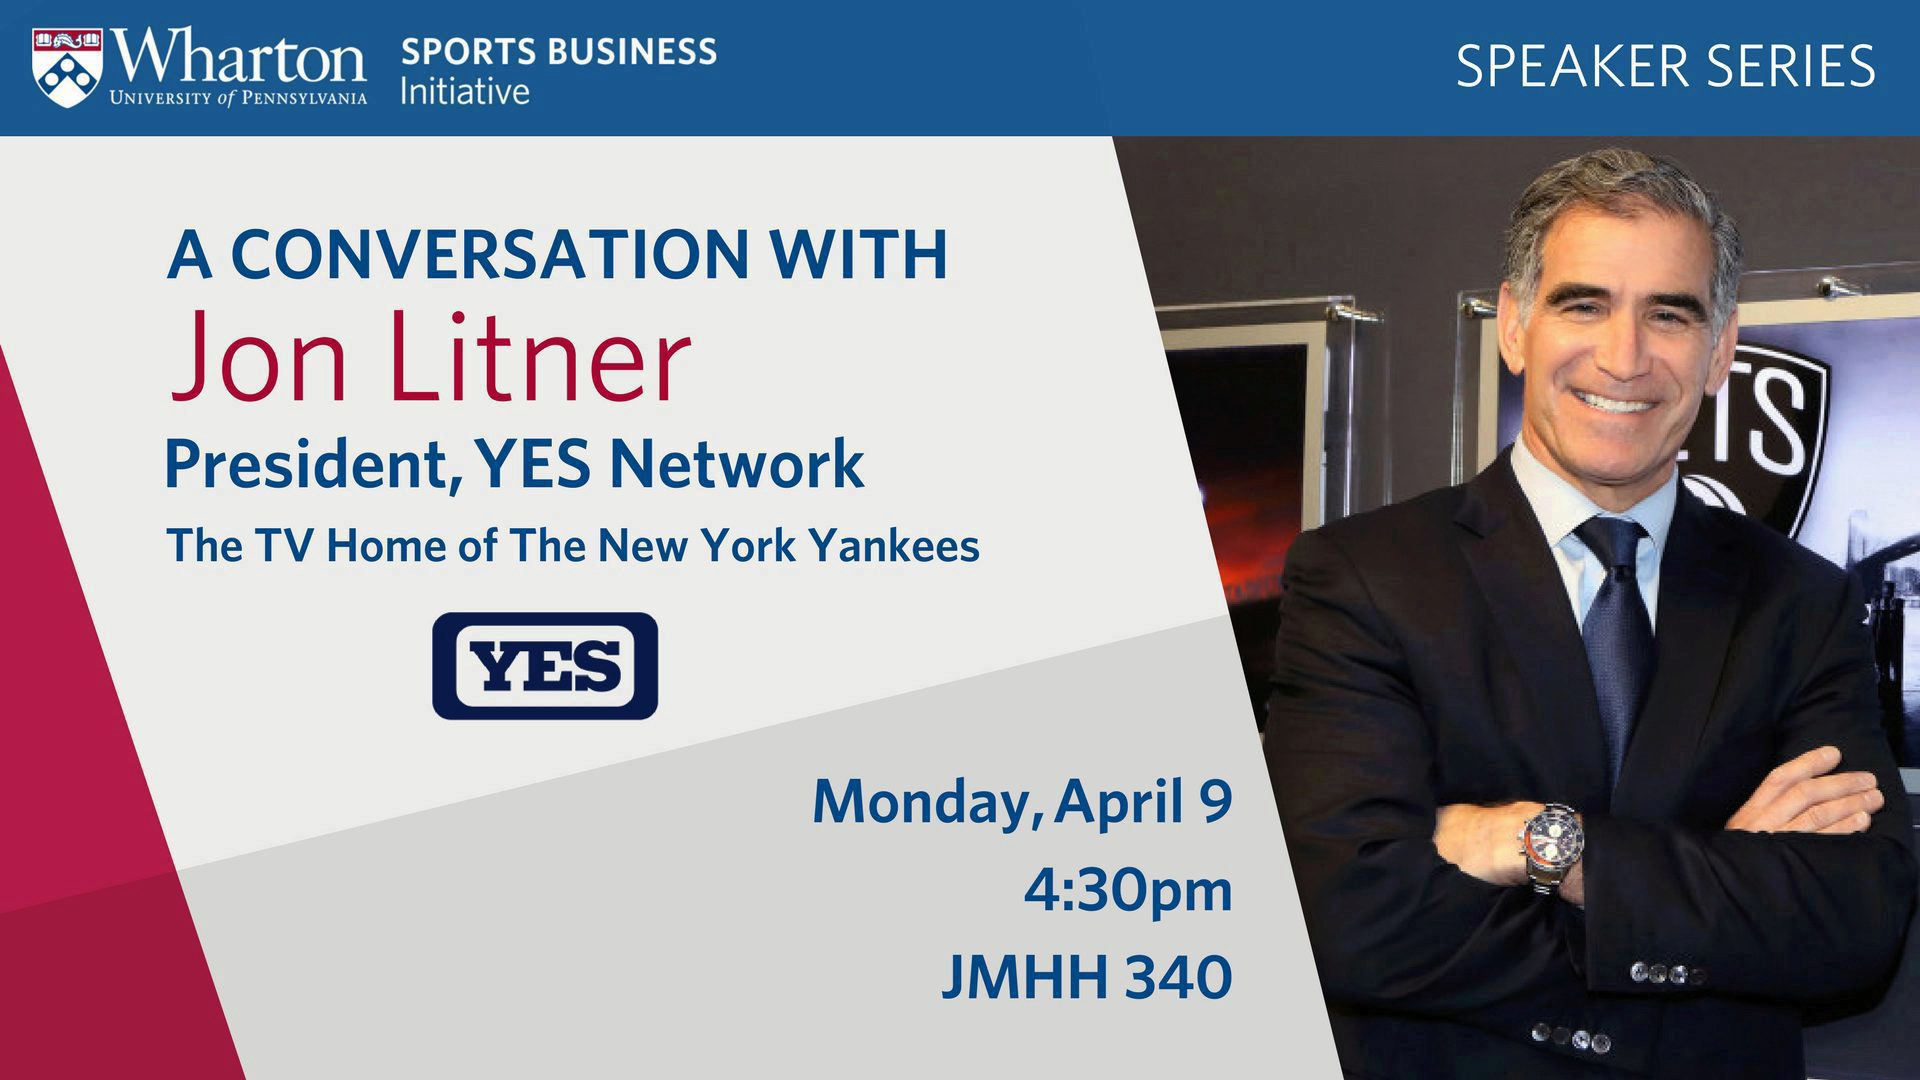 a conversation with jon litner - wharton sports business initiative